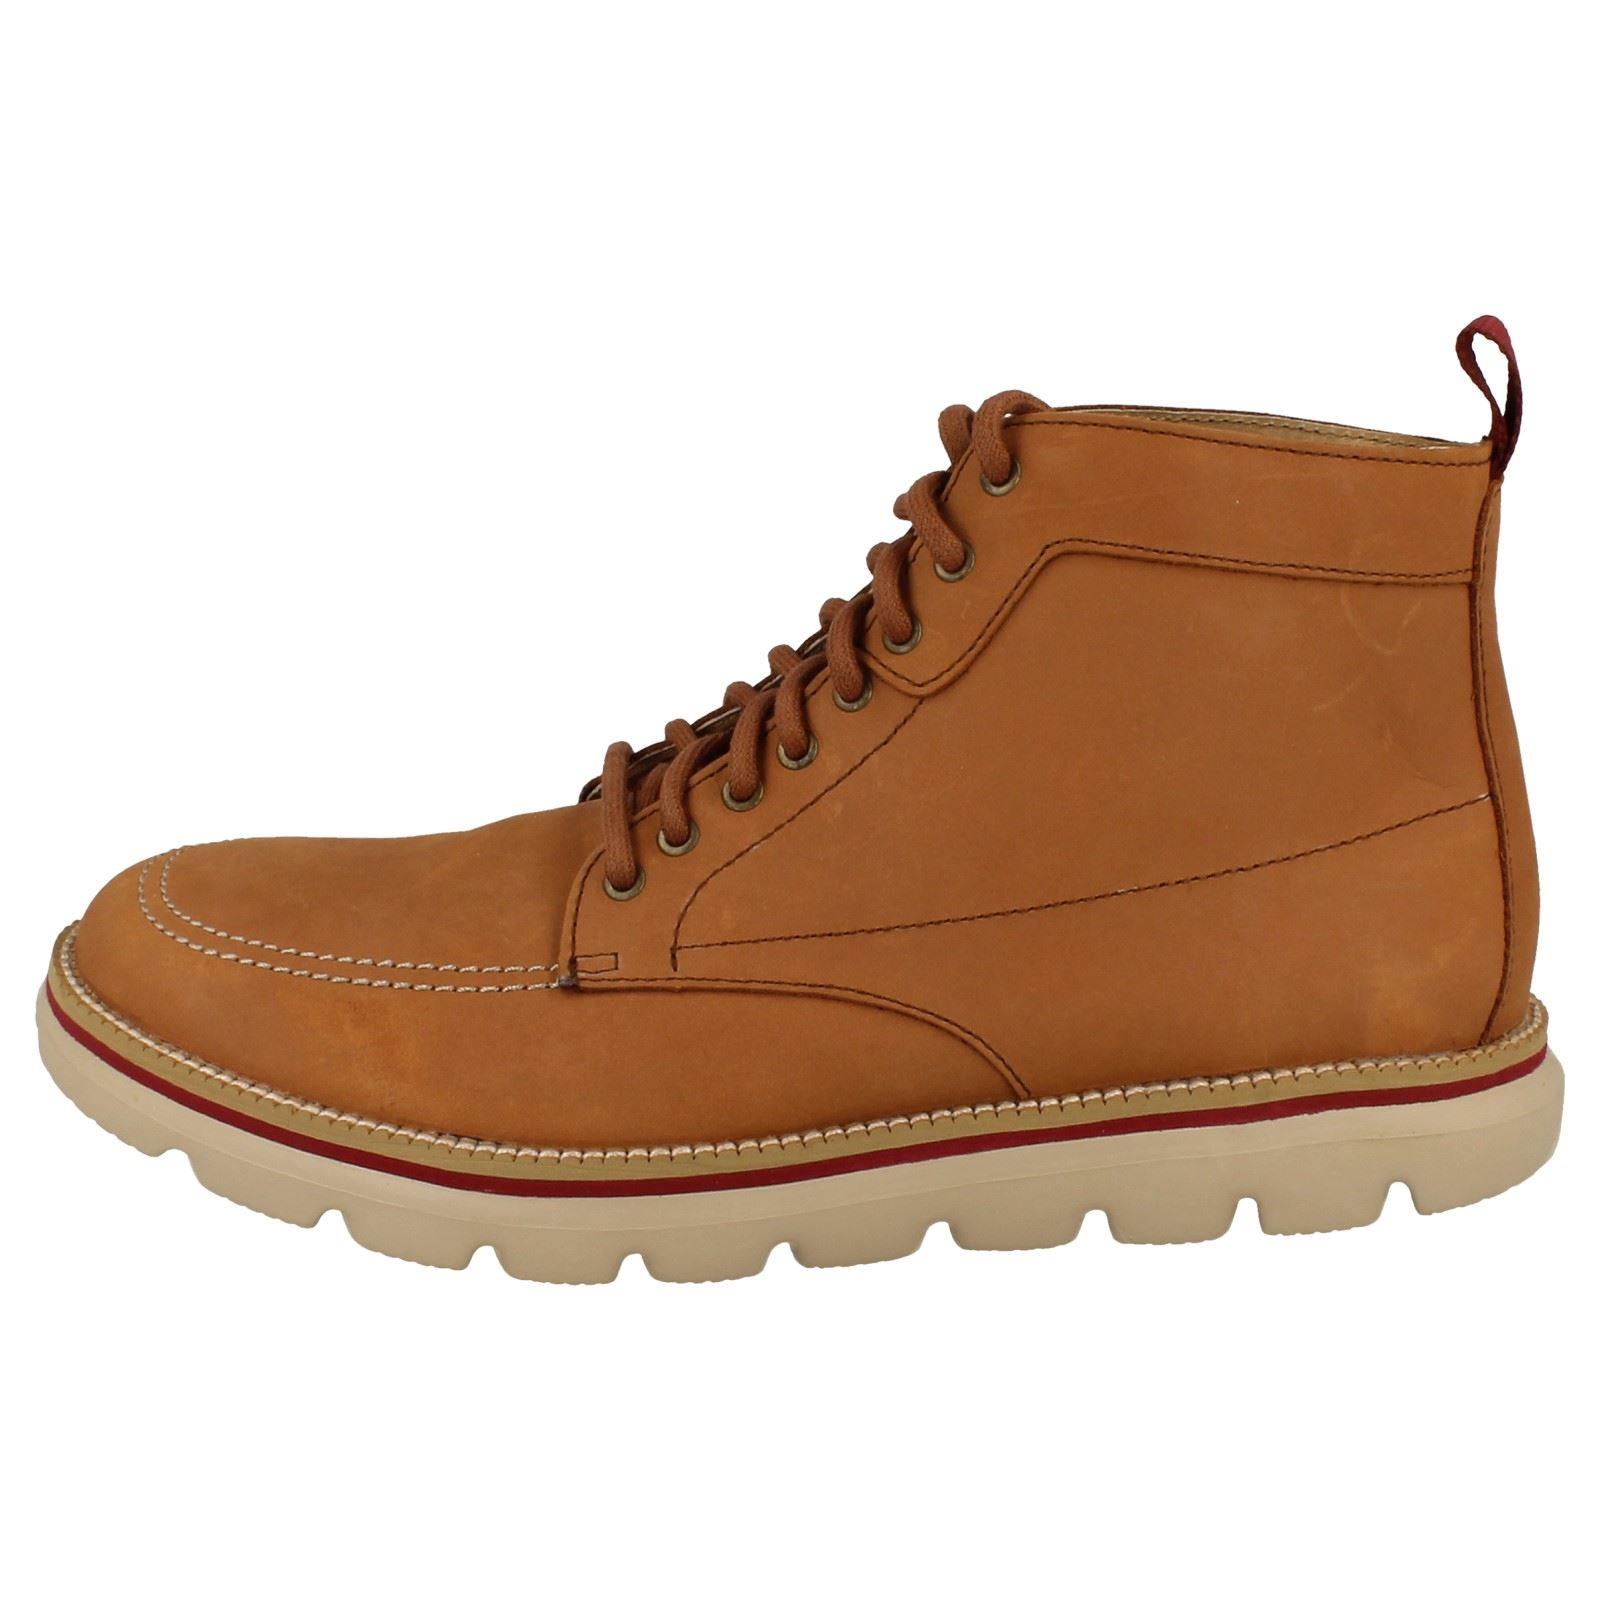 39ab16c9214 Details about Skechers Mens Casual Boots Frontier